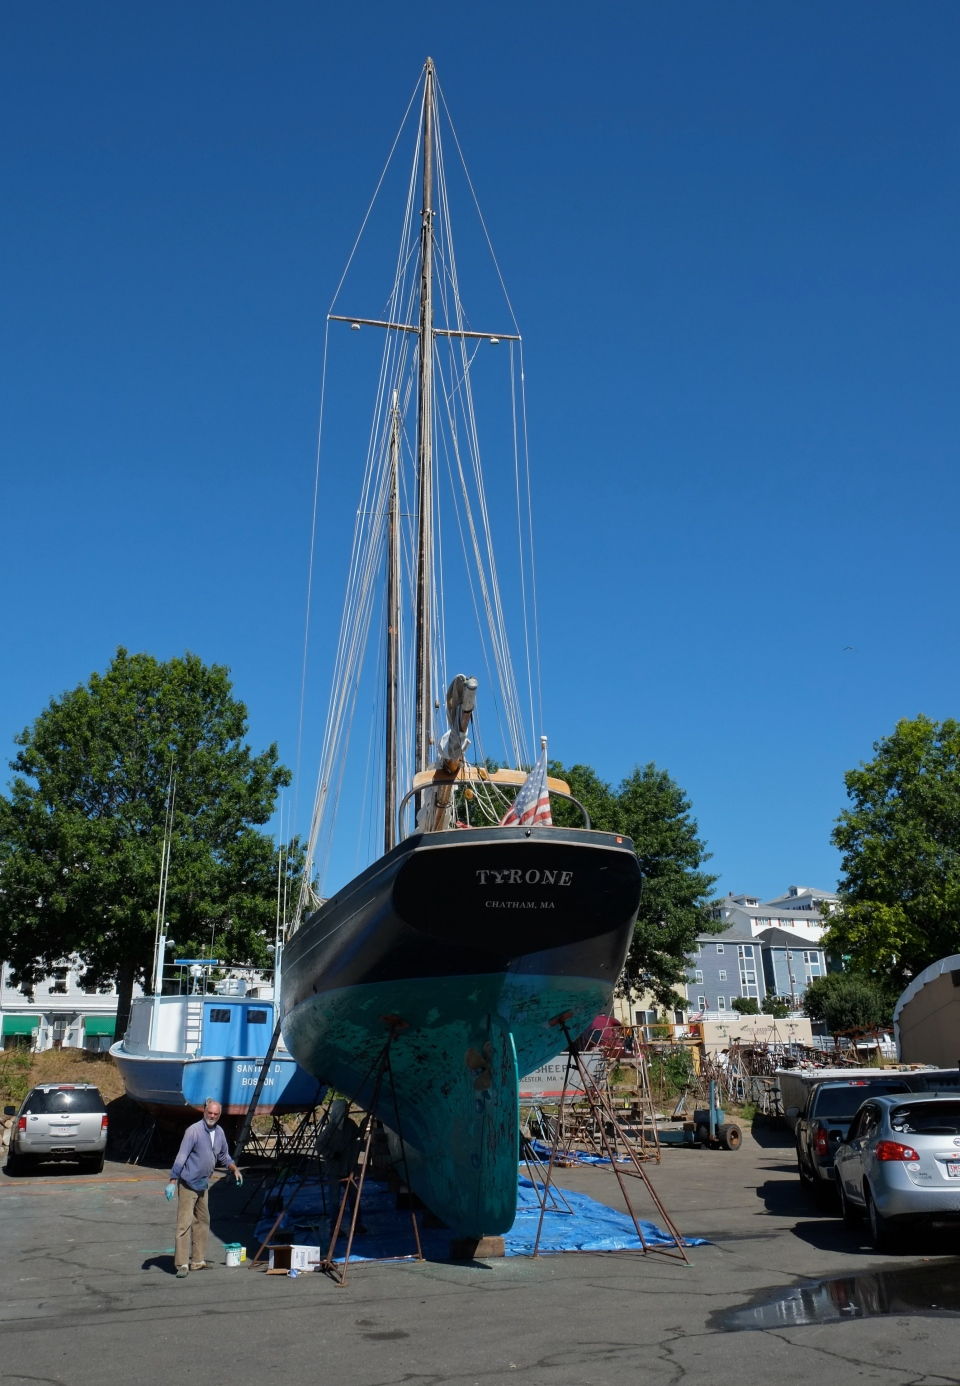 gloucester-schooner-festival-2016-schooner-tyrone-captain-matt-sutphin-2-copyright-kim-smith